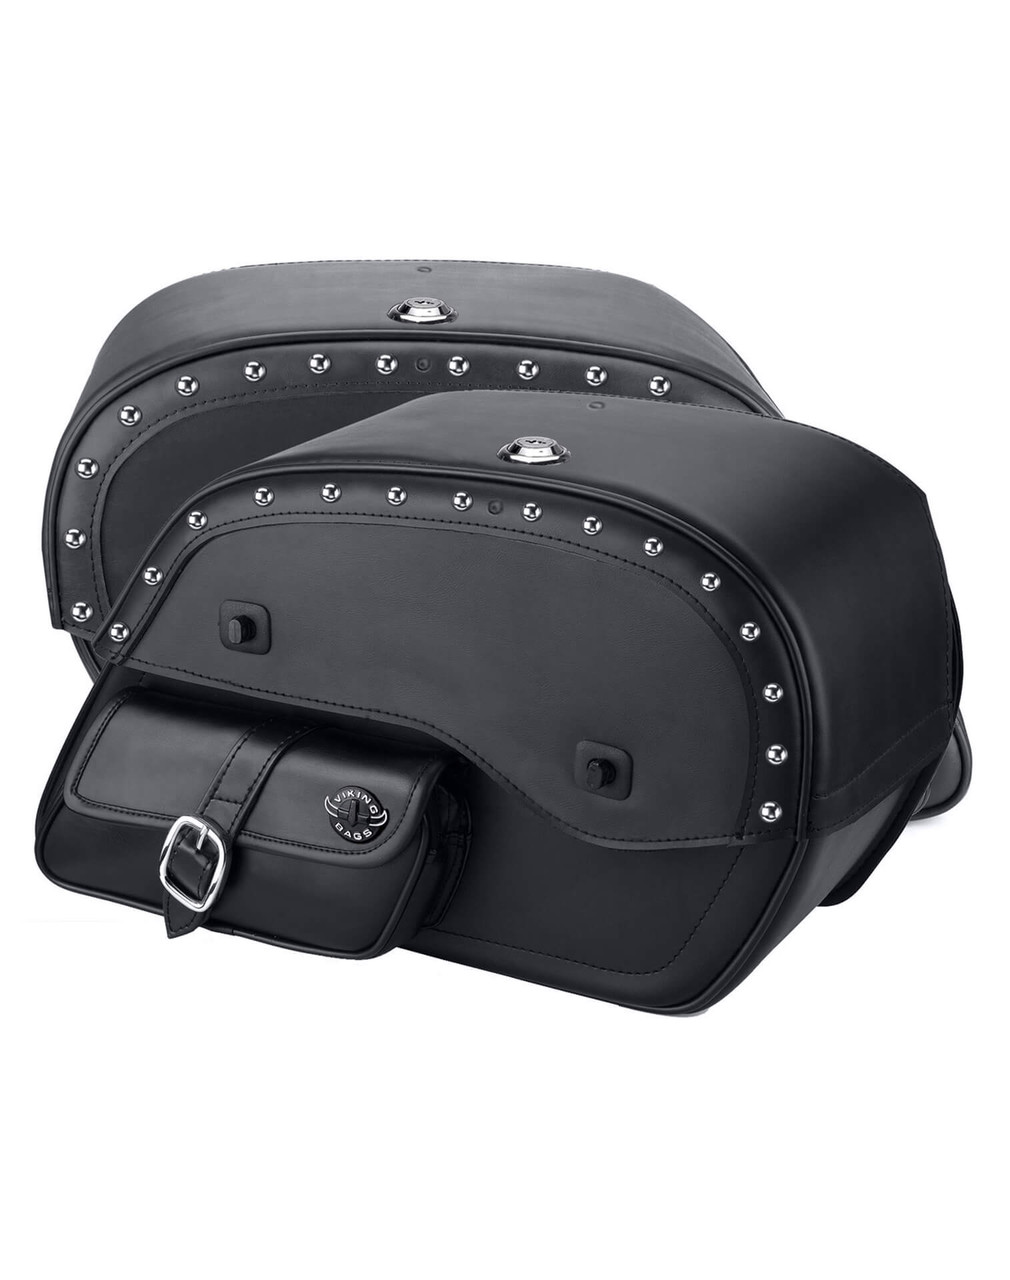 Triumph Rocket III Roadster Side Pocket Studded Motorcycle Saddlebags Both Bags View